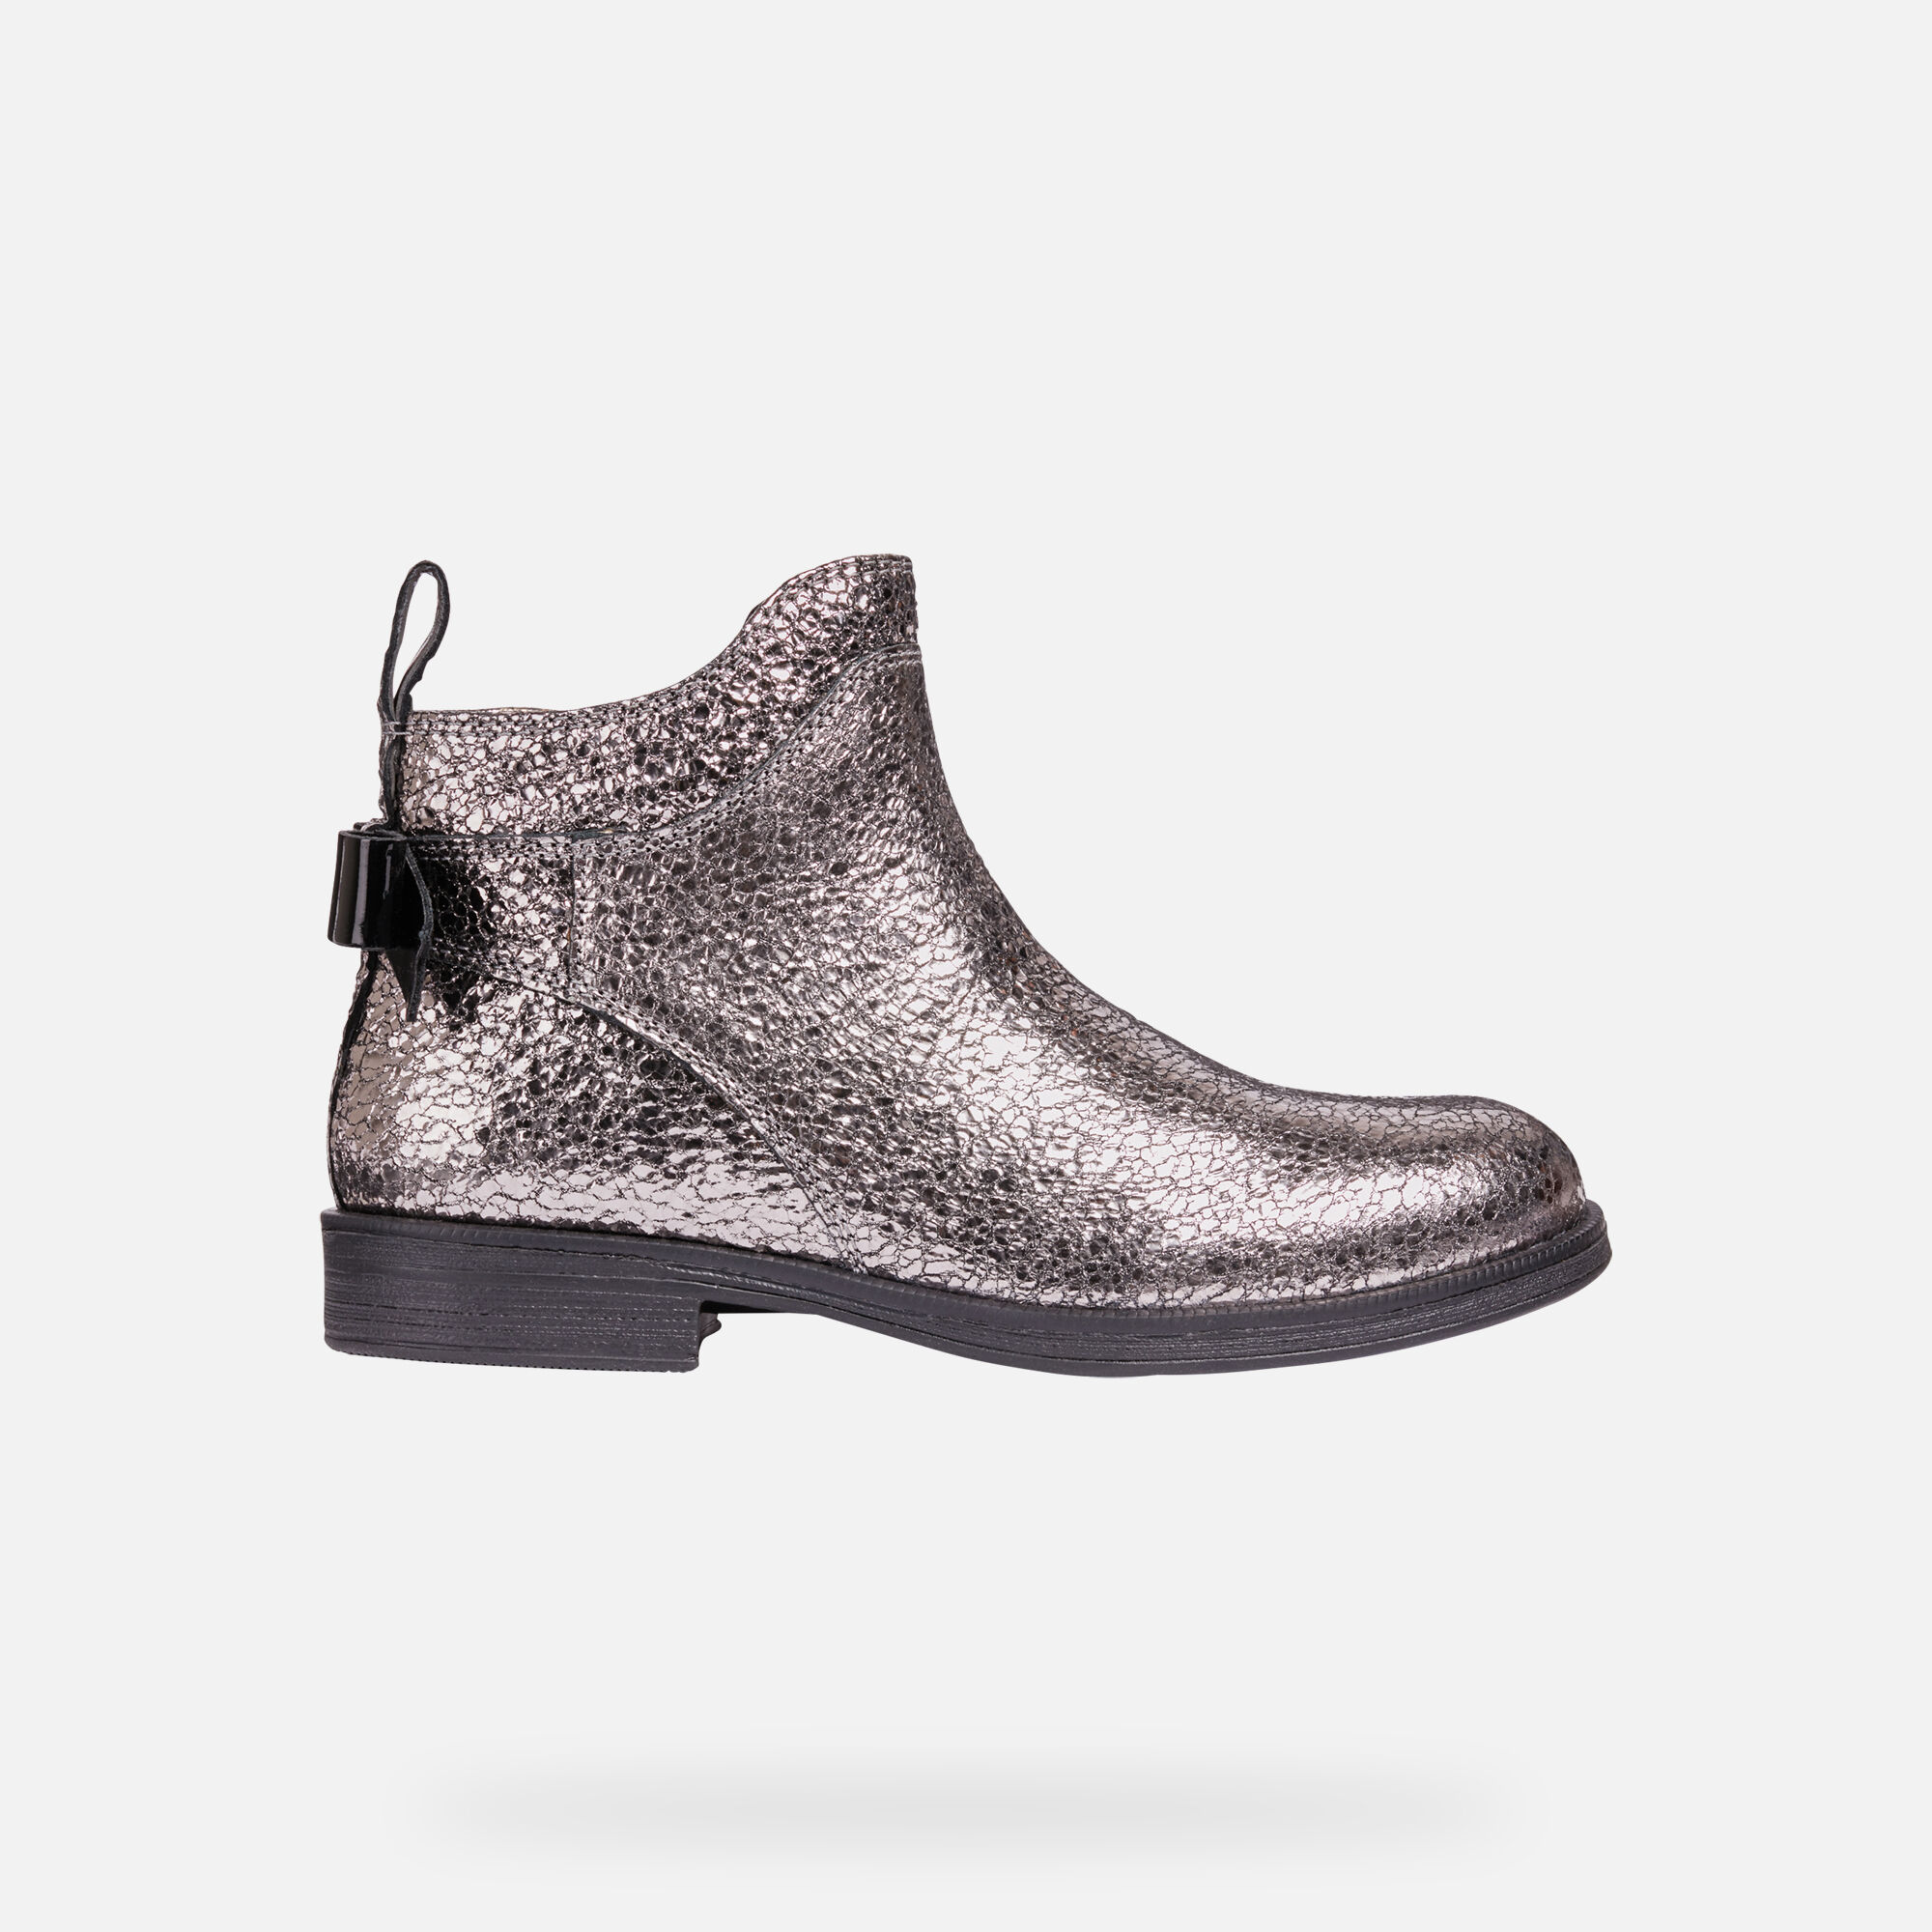 b125e31d4ee84 Geox Girls Junior Agata Zip Boots Clothing, Shoes & Jewelry Girls